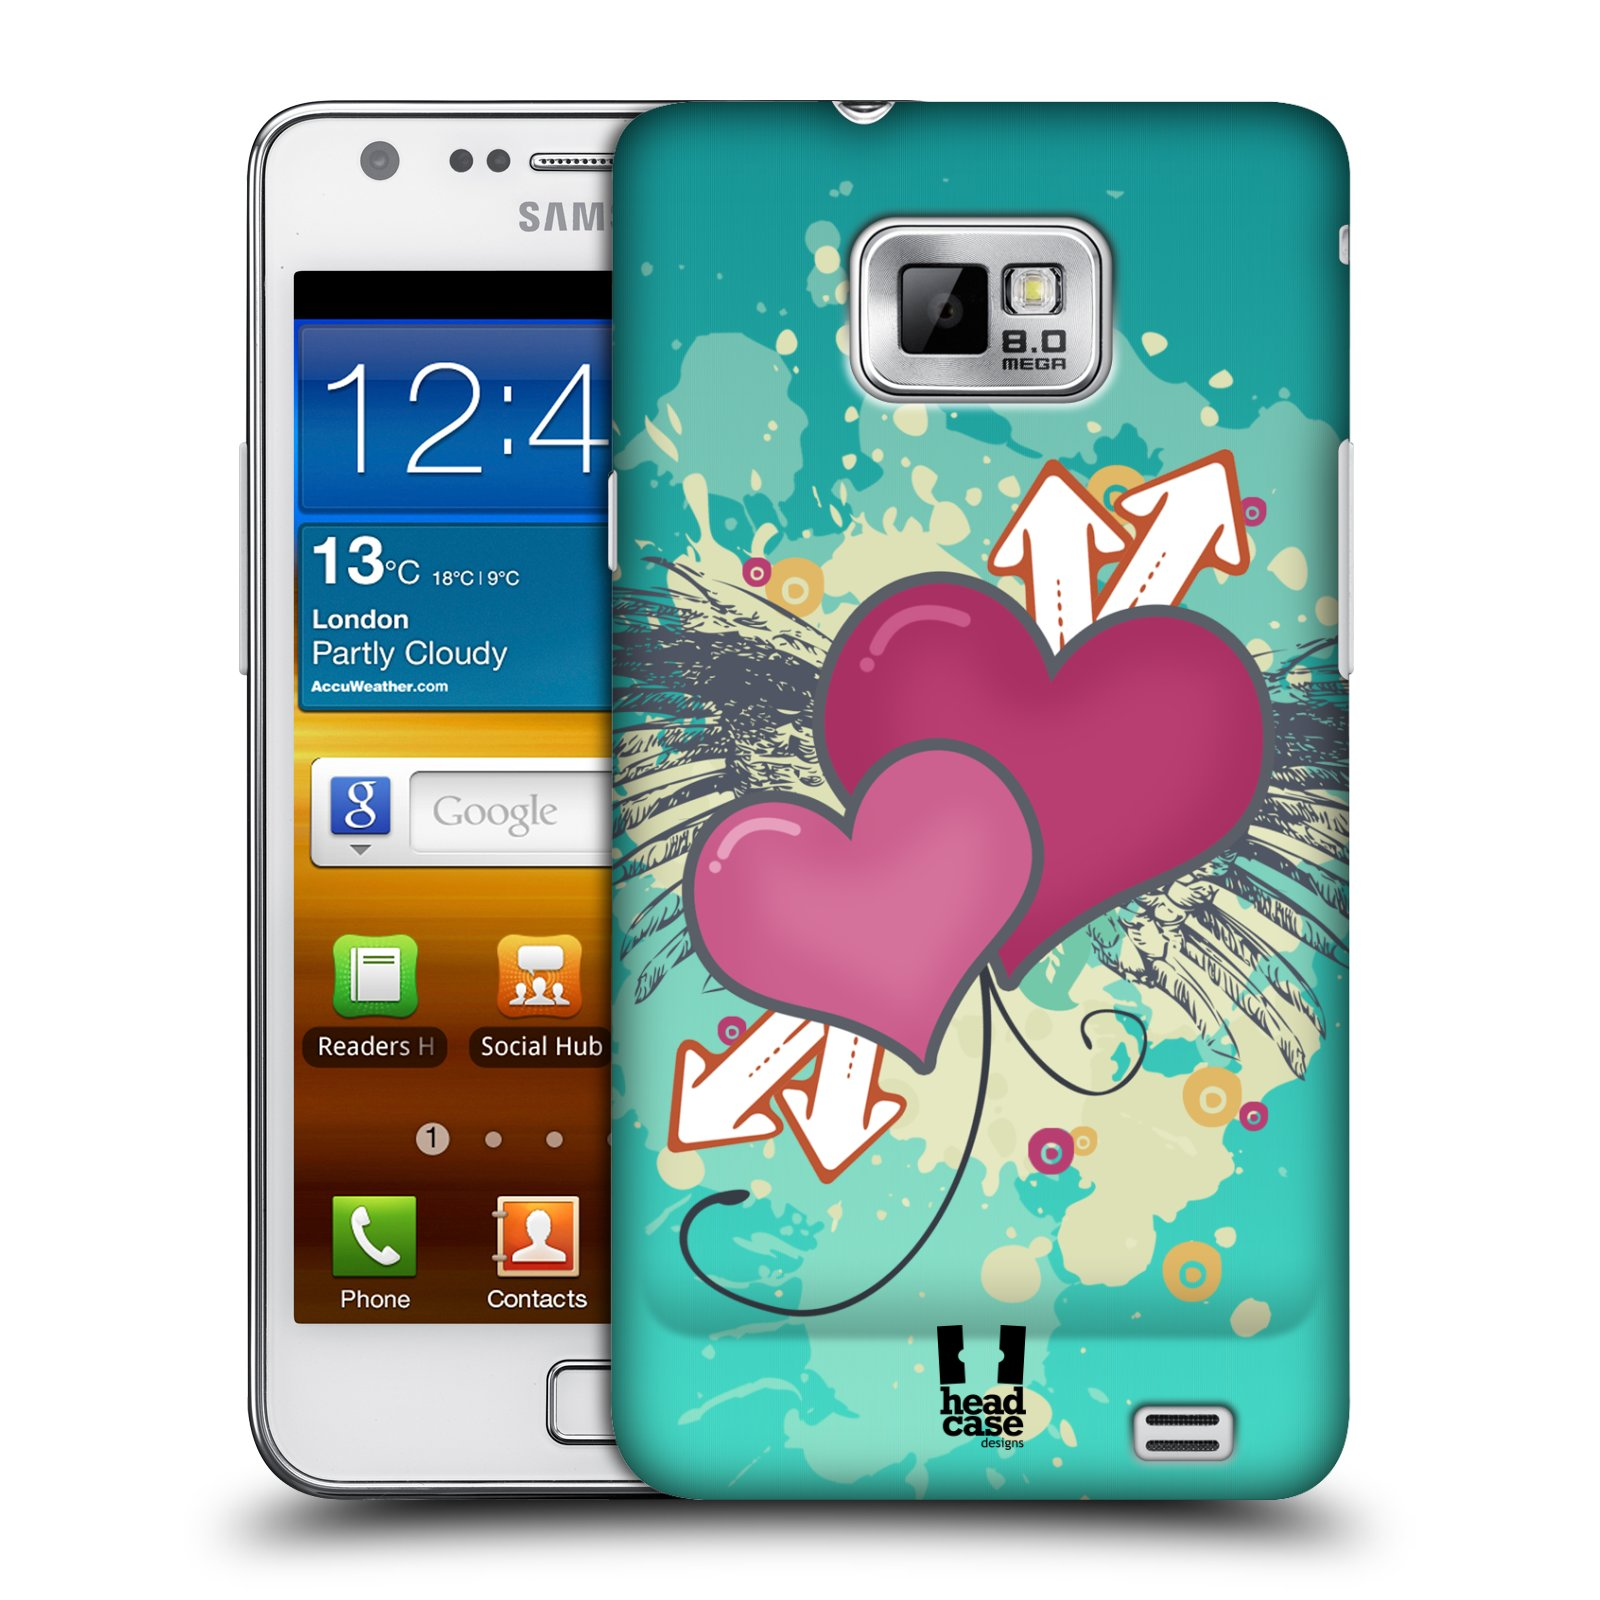 HEAD CASE DESIGNS HEART COLLECTION CASE COVER FOR SAMSUNG GALAXY S2 II I9100